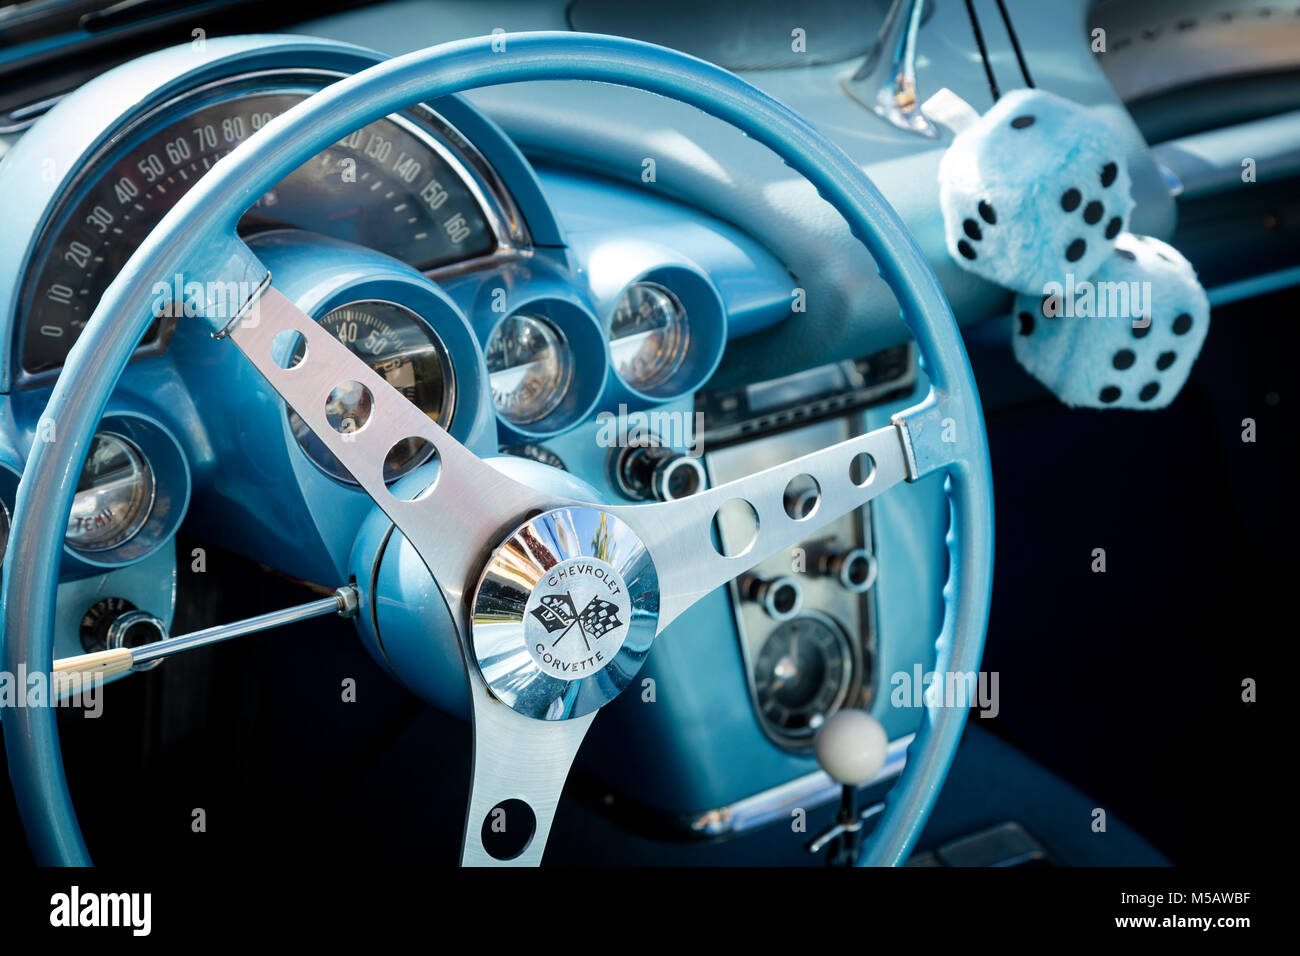 Steering wheel of a 1959 Chevrolet Corvette Stingray on display at 'Cars on 5th' autoshow, Naples, Florida, - Stock Image